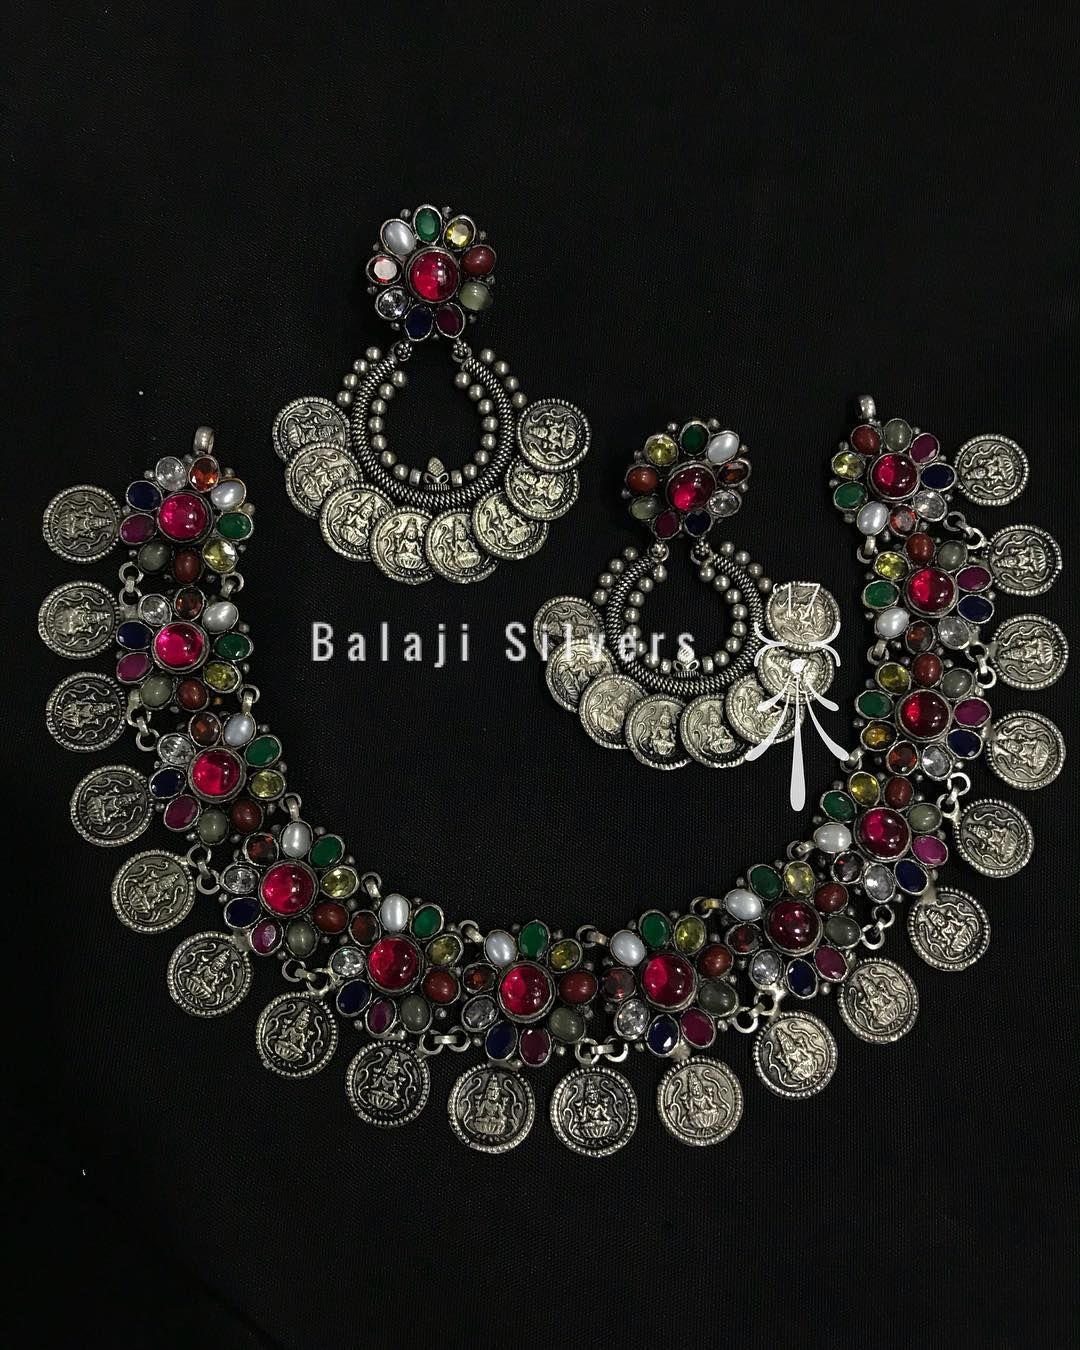 Oxidised Silver Navarathna Set From Balaji Silvers